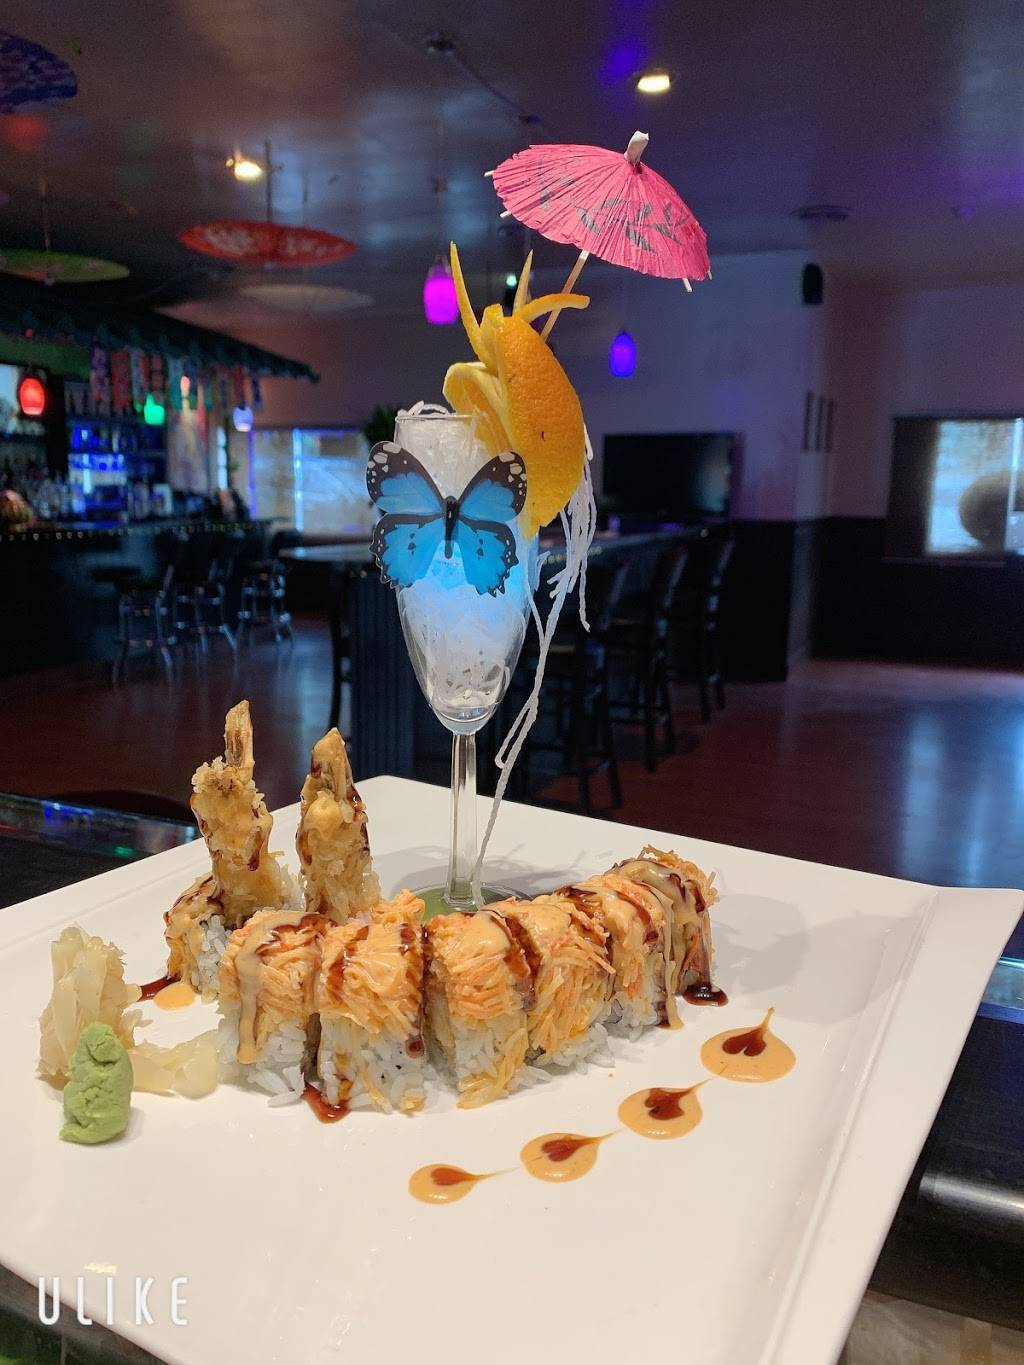 Ginza Asian Fusion | restaurant | 152 W Bridge St, Saugerties, NY 12477, USA | 8452478888 OR +1 845-247-8888